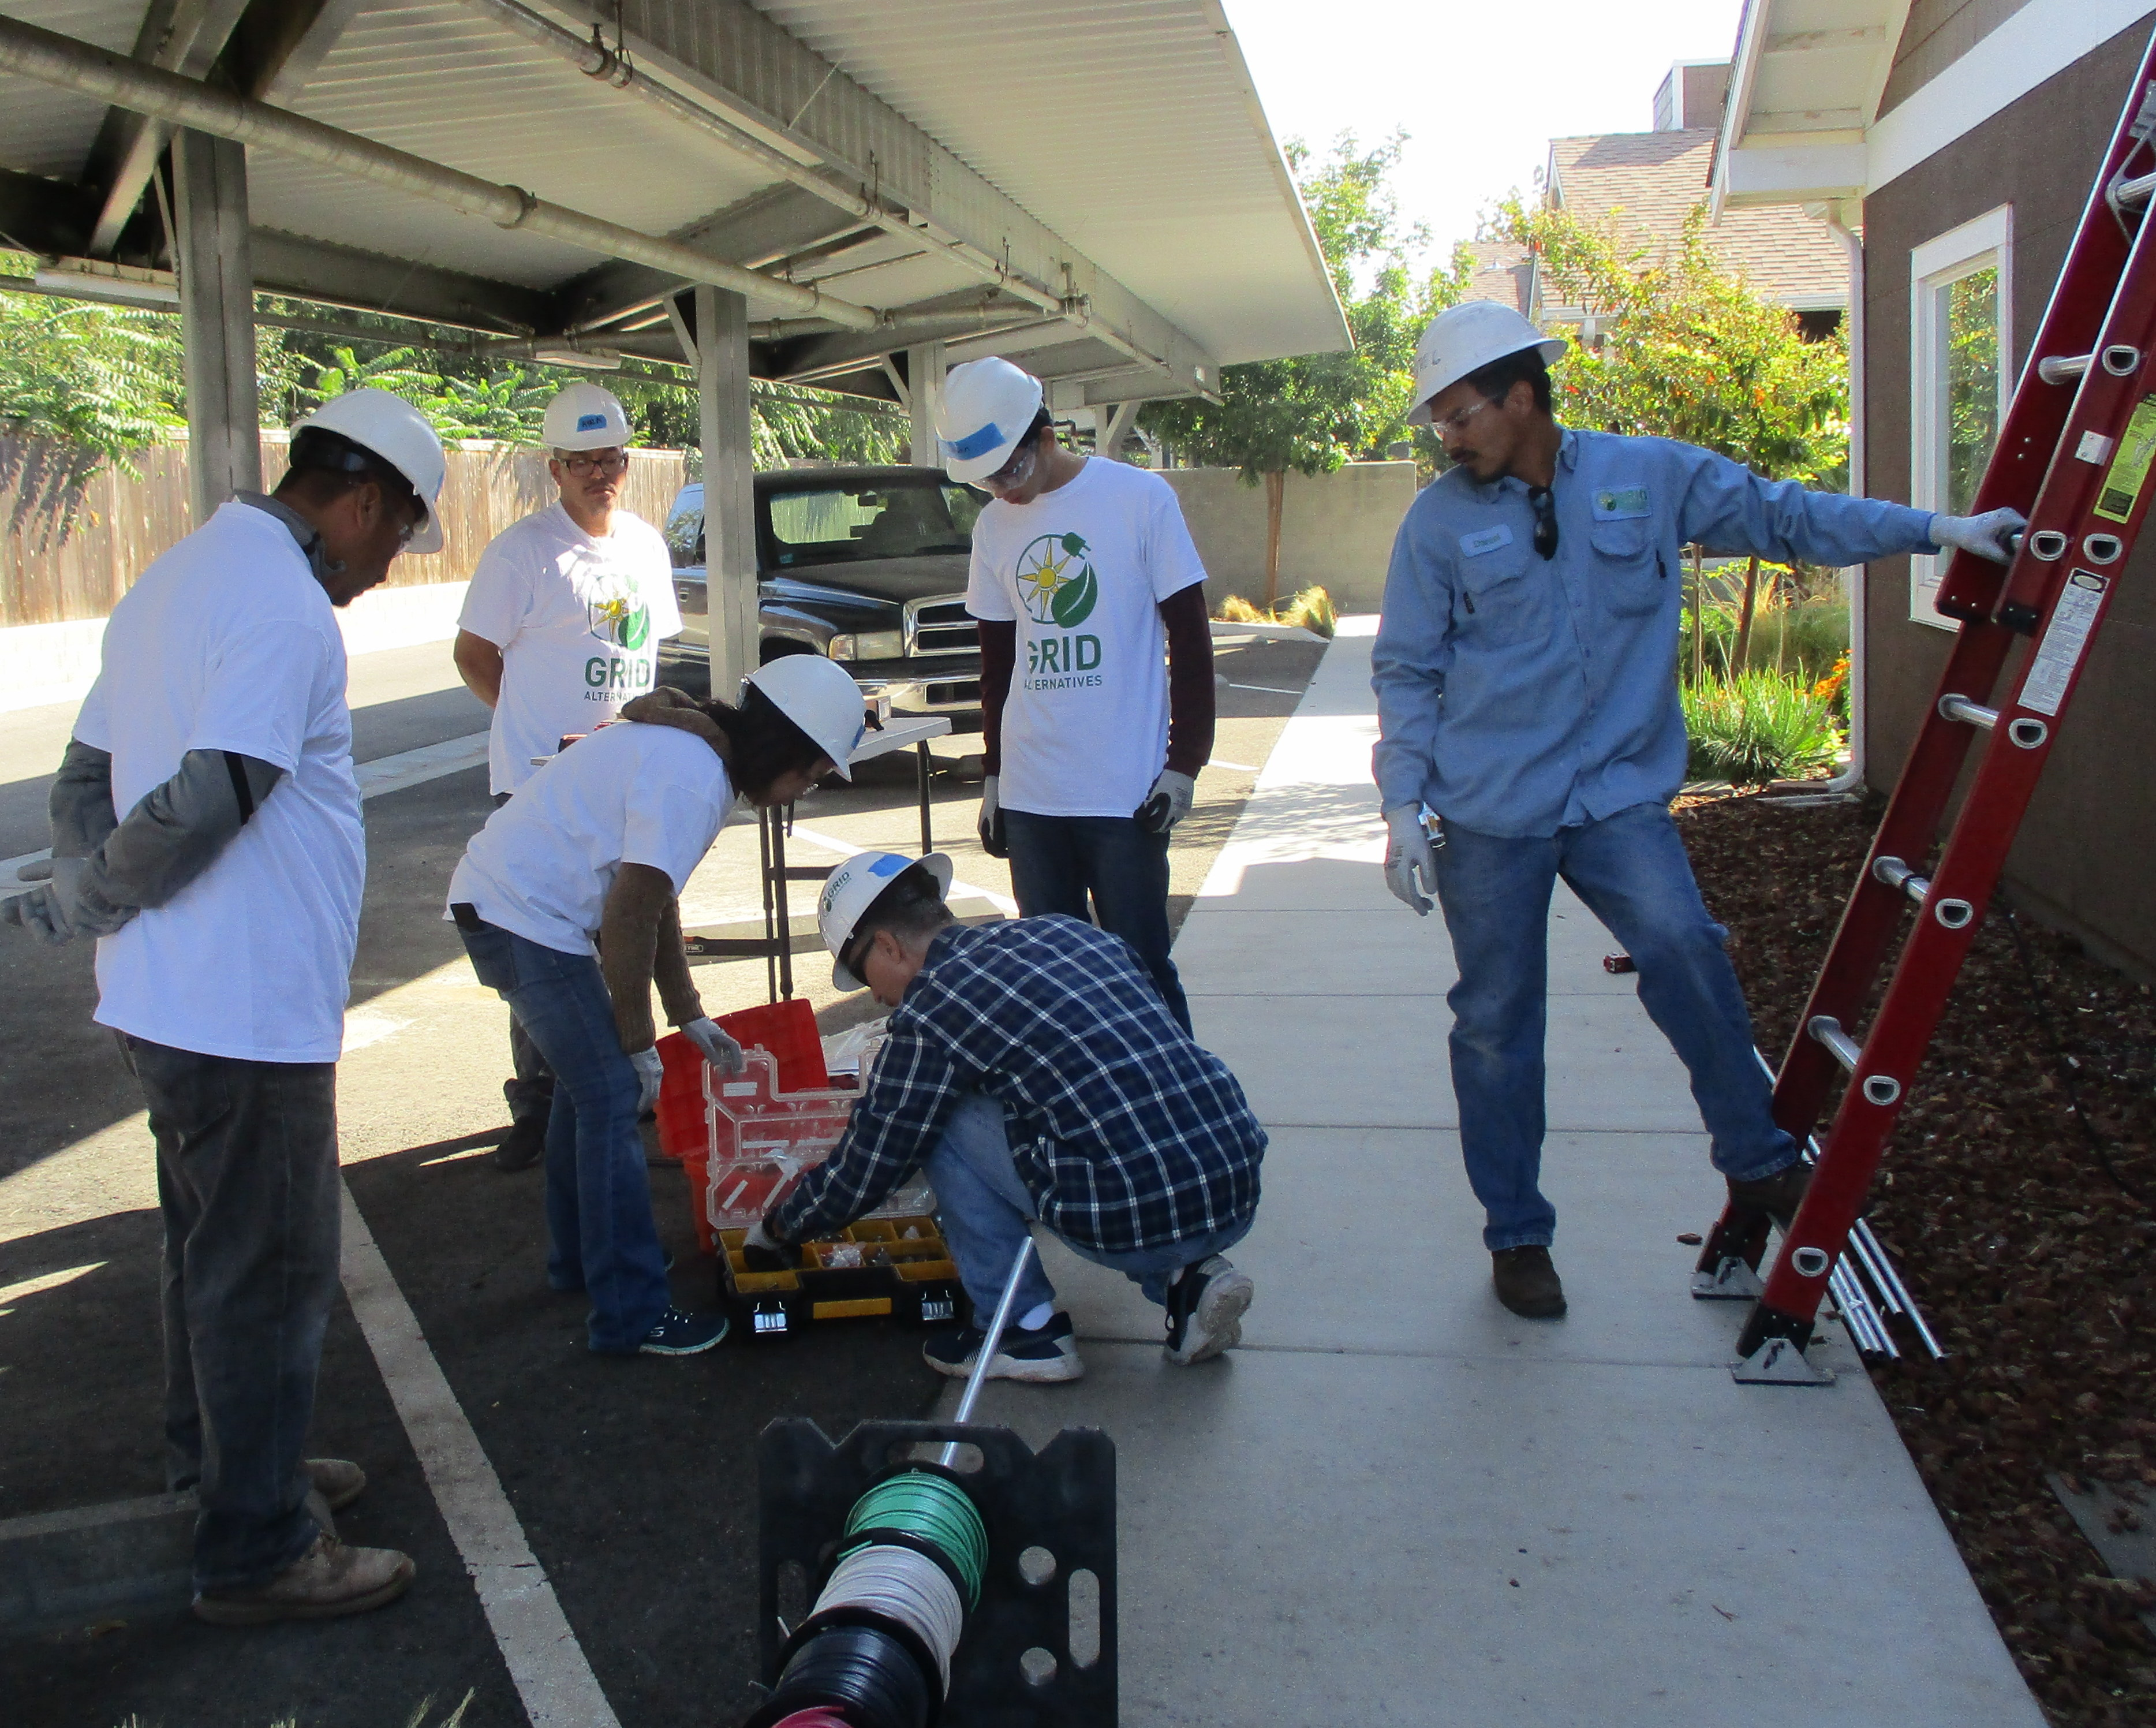 Volunteers on the ground with ladder